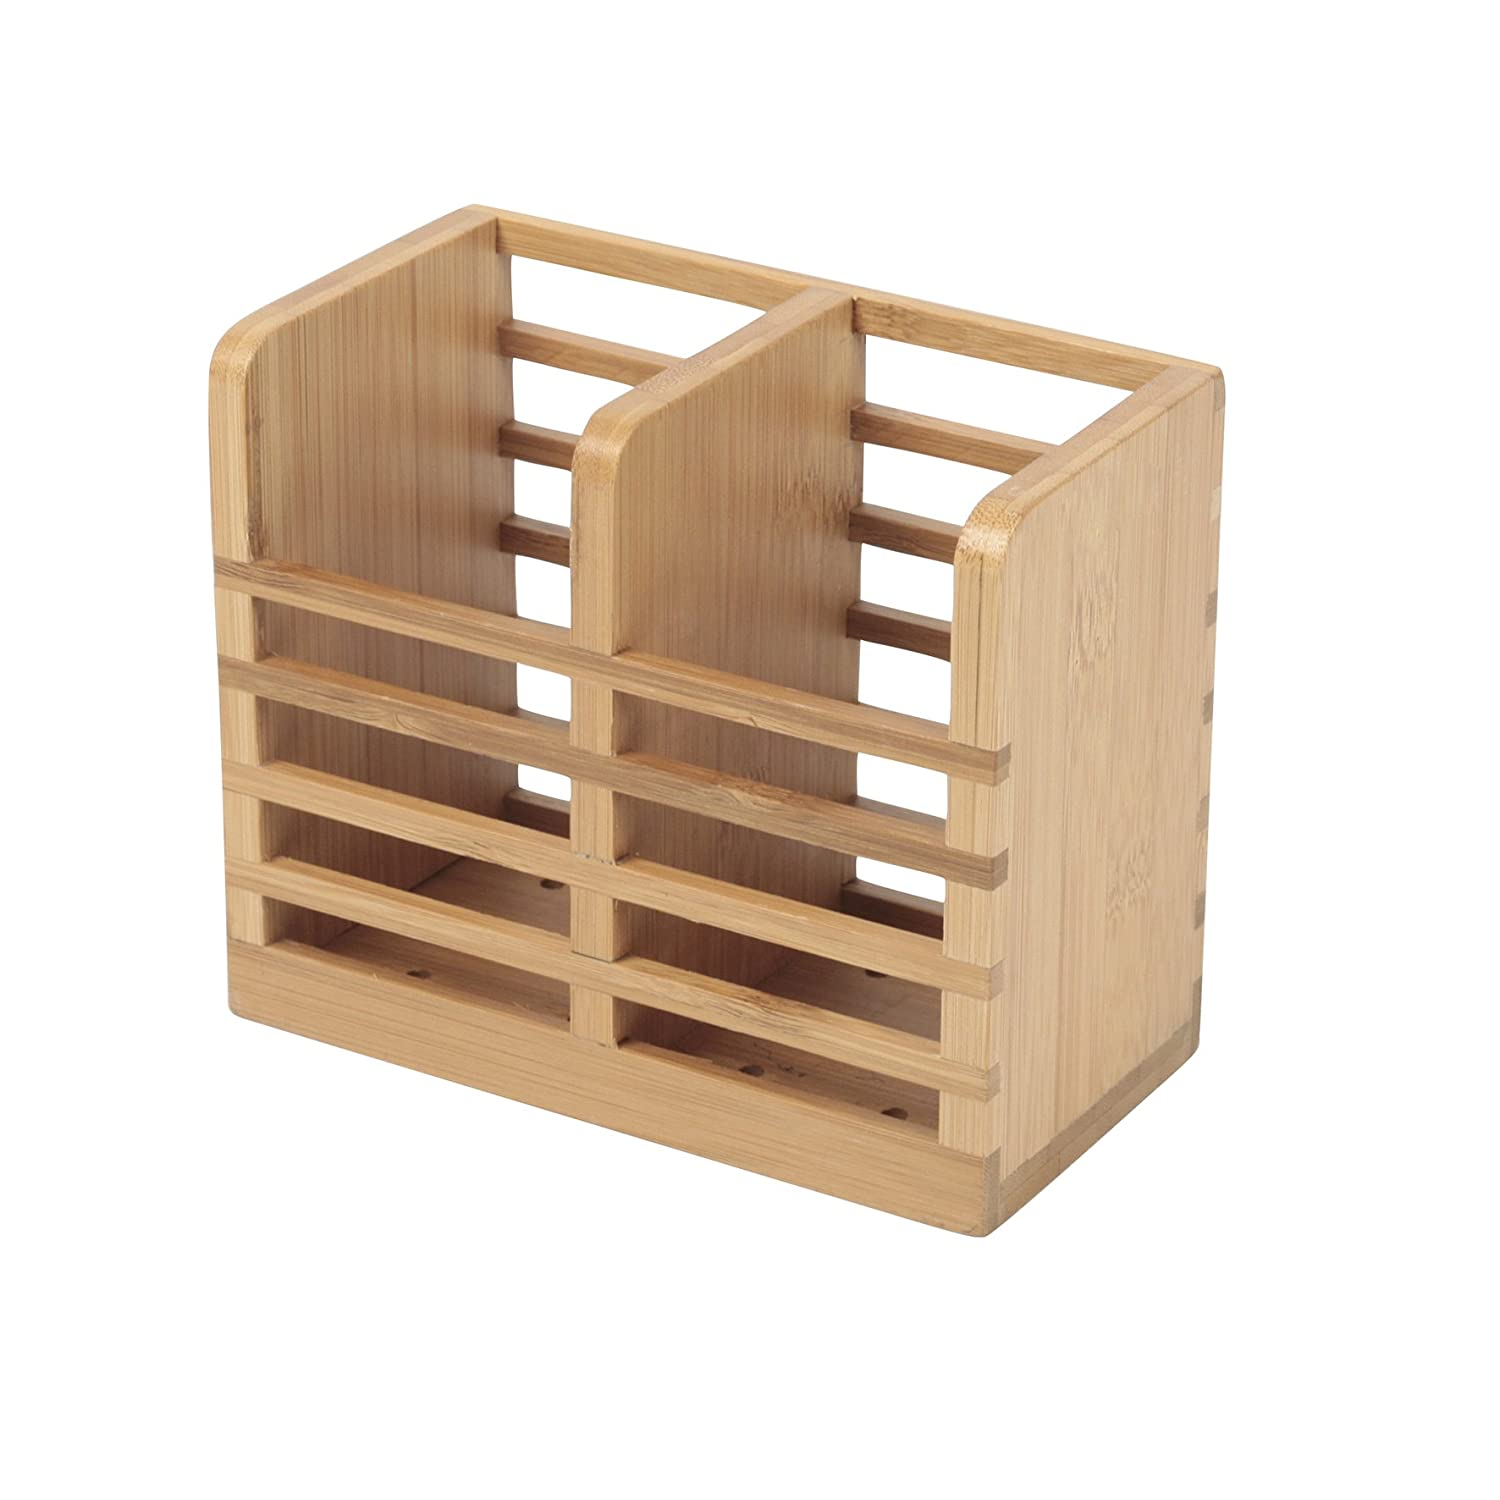 Ambiance Nature 507107 Cutlery Holder Bamboo 15 x 8 x 12.5 cm